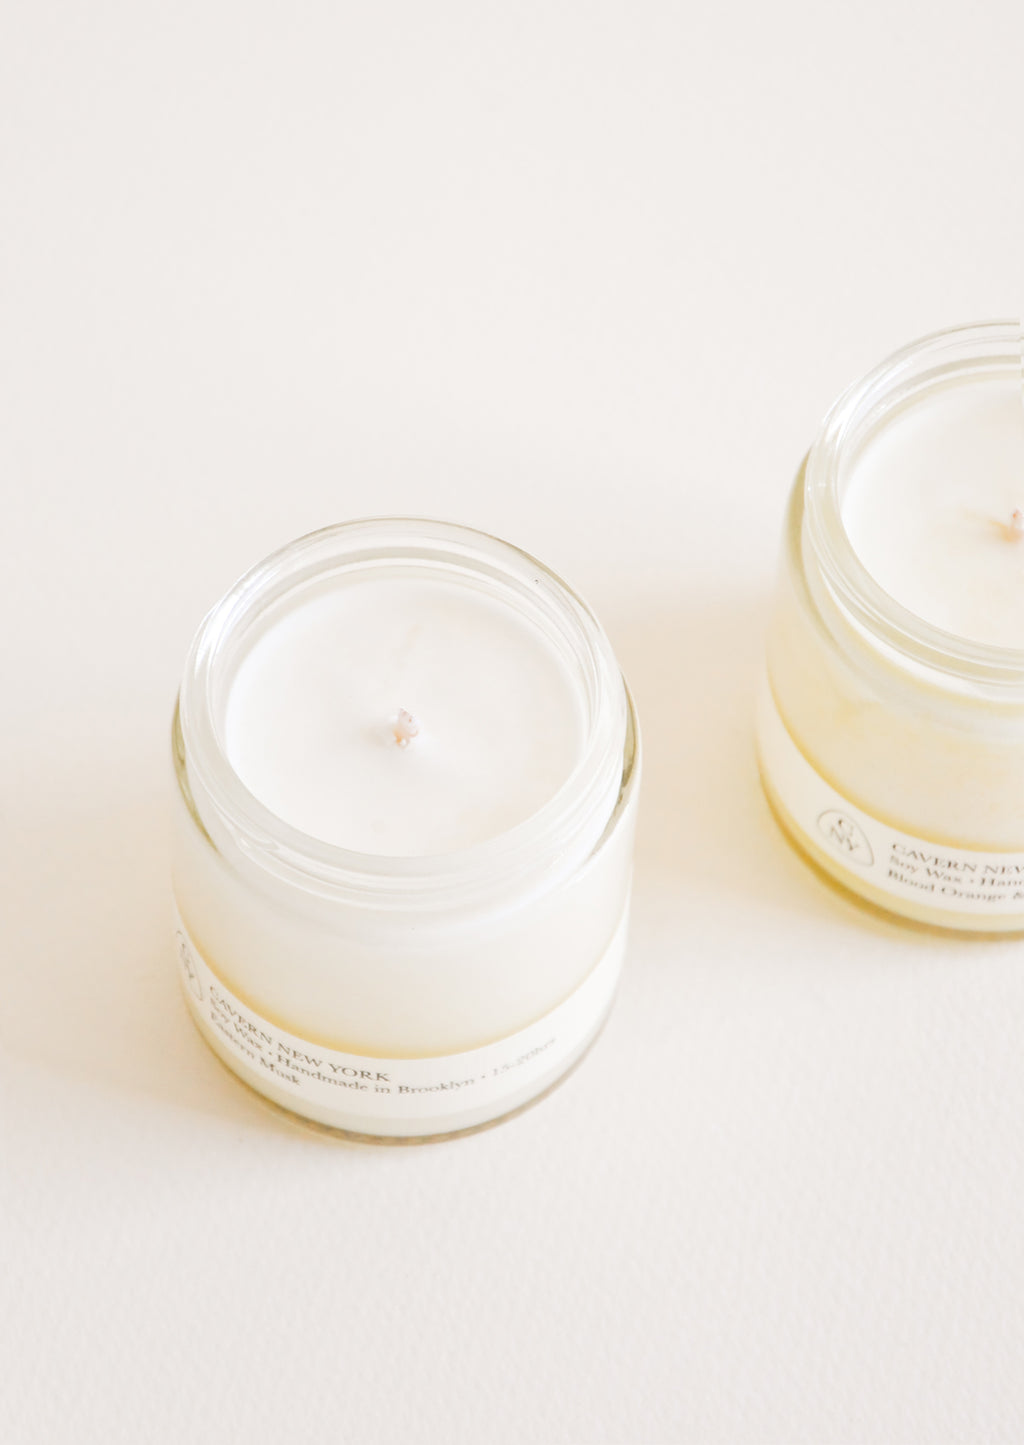 2: Two glass jars with white candle and wick inside